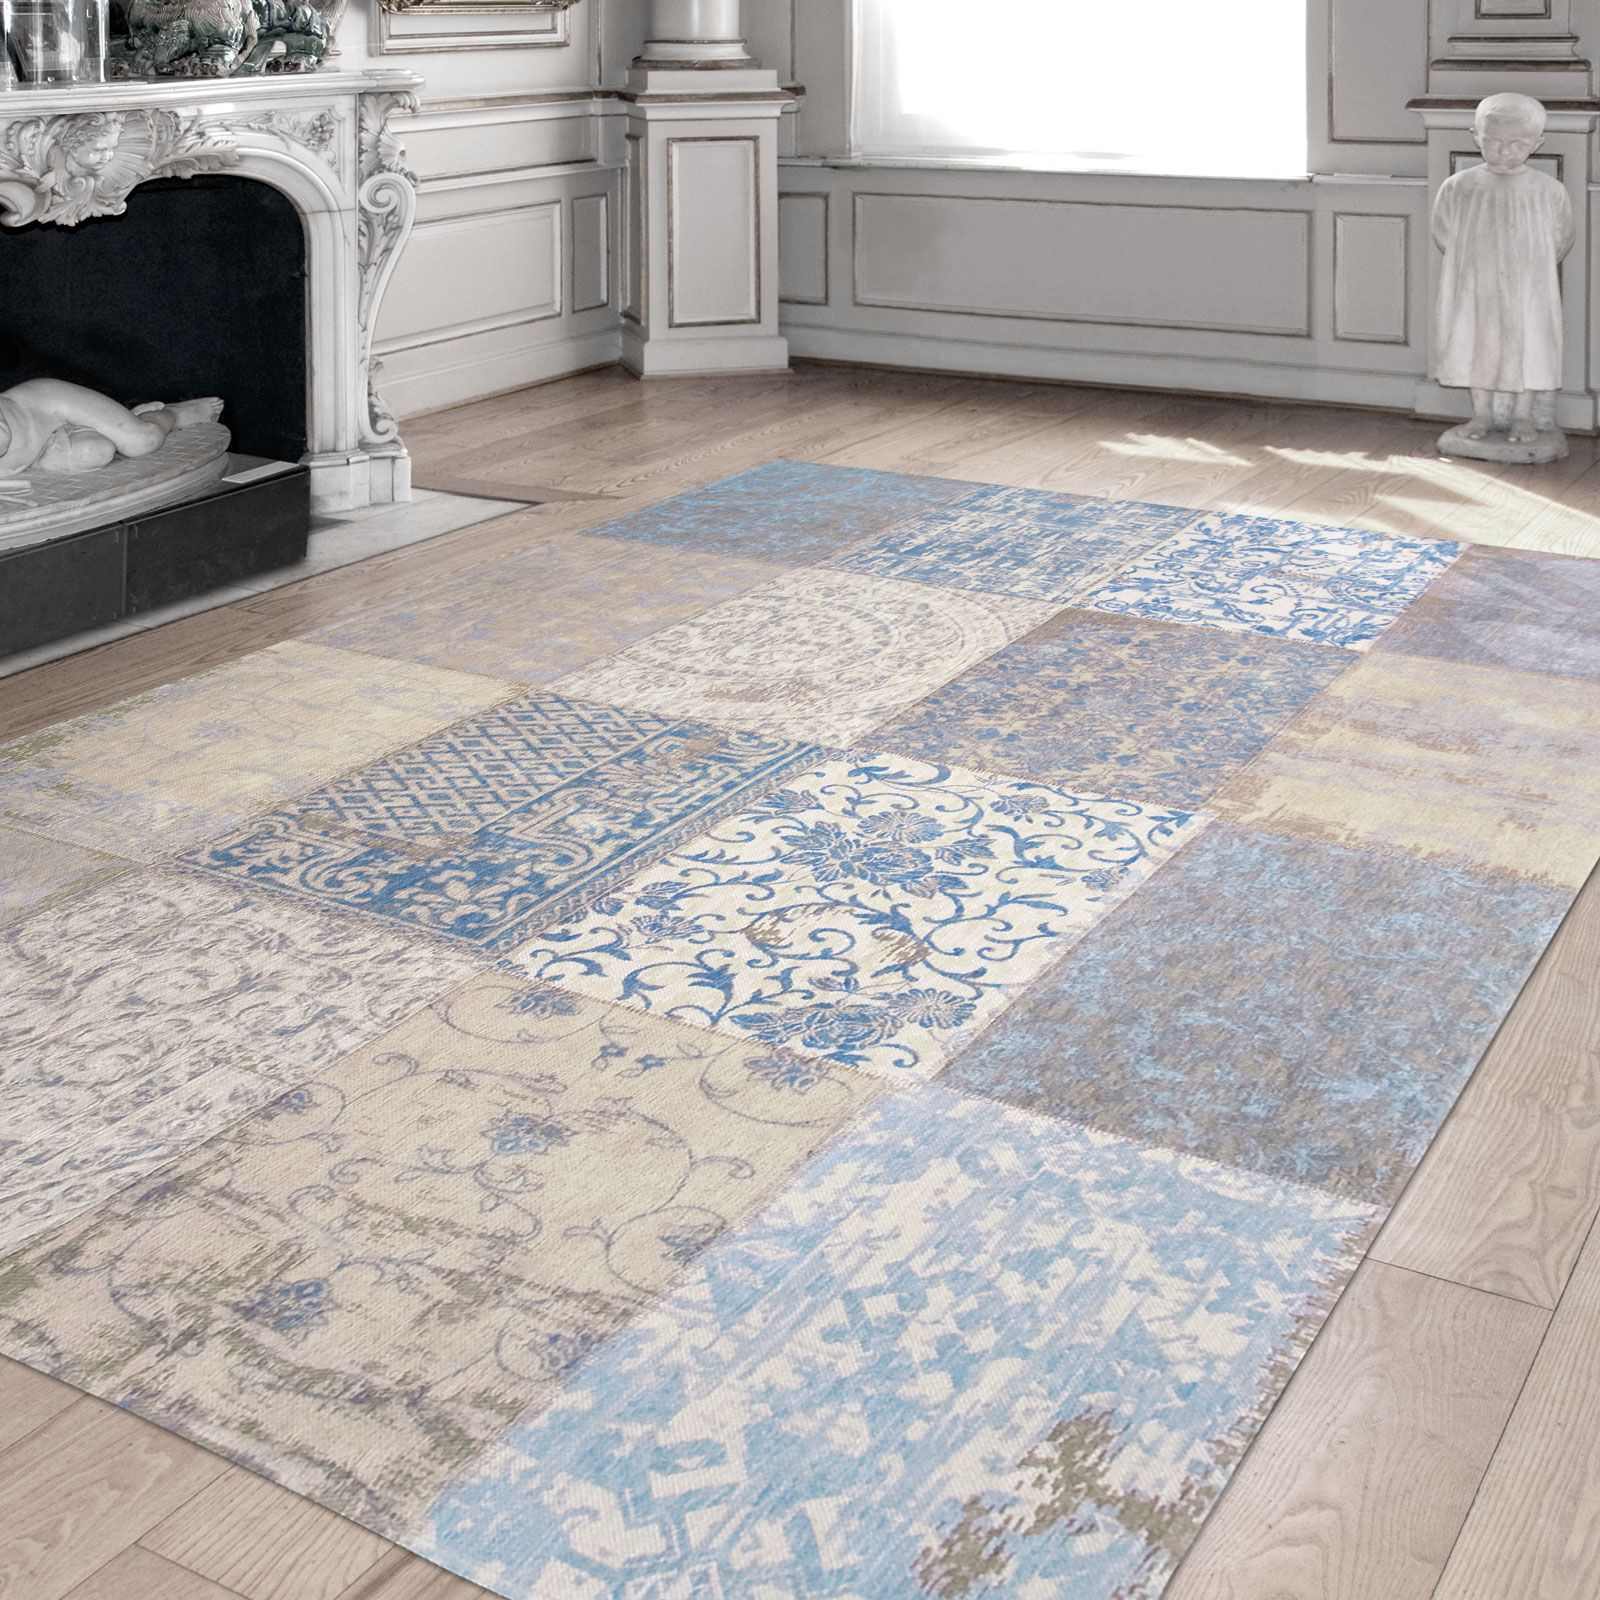 Vintage Effect Rug: A Faded Effect Design That Gives This Rug A Vintage